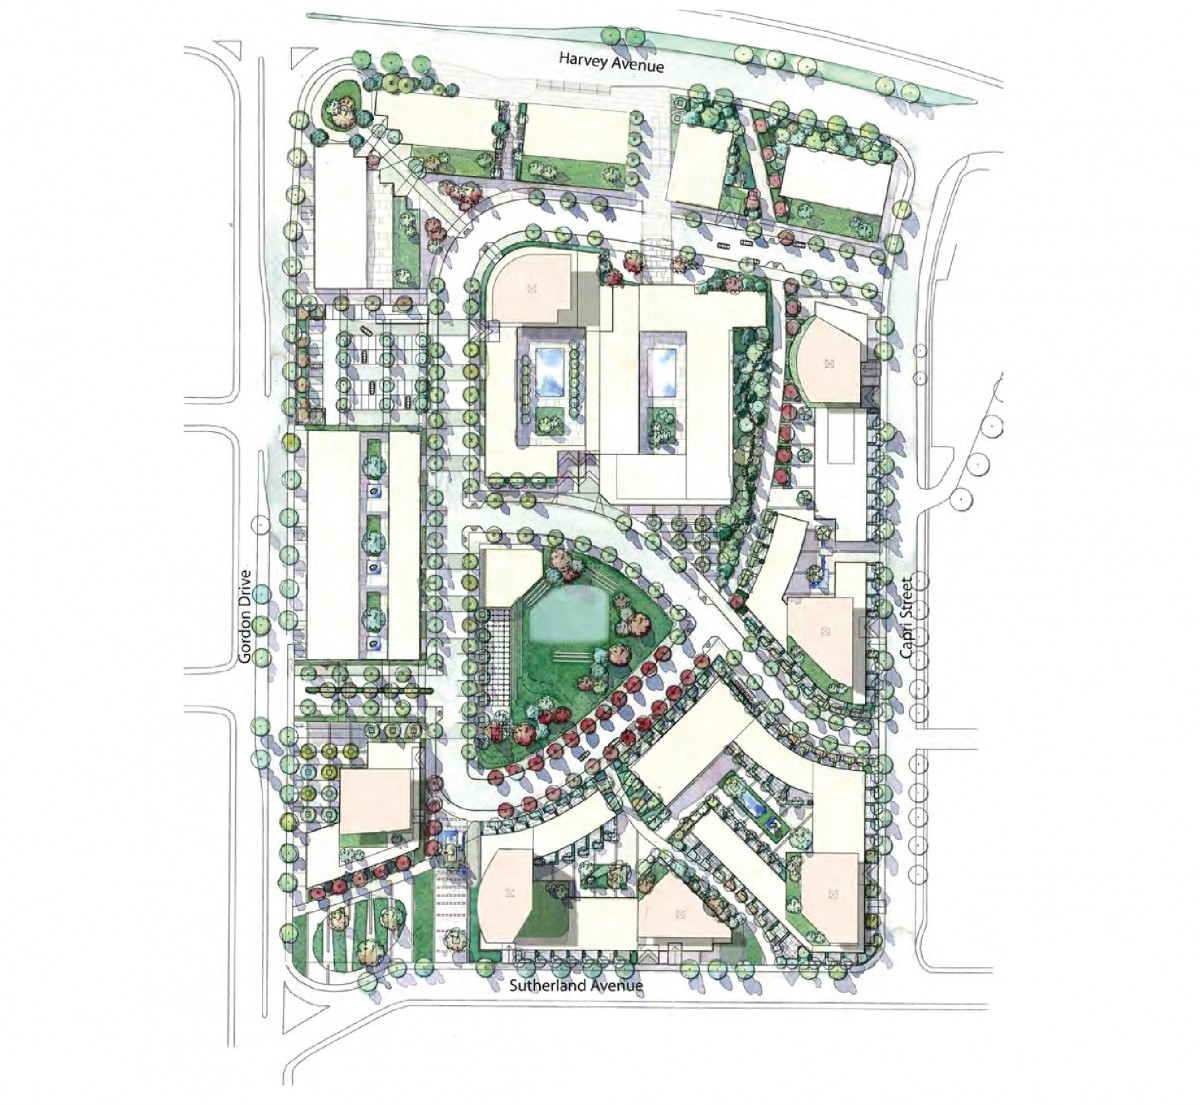 2040 OCP - Form and Character - Zone 26 - Capri Centre Concept Plan